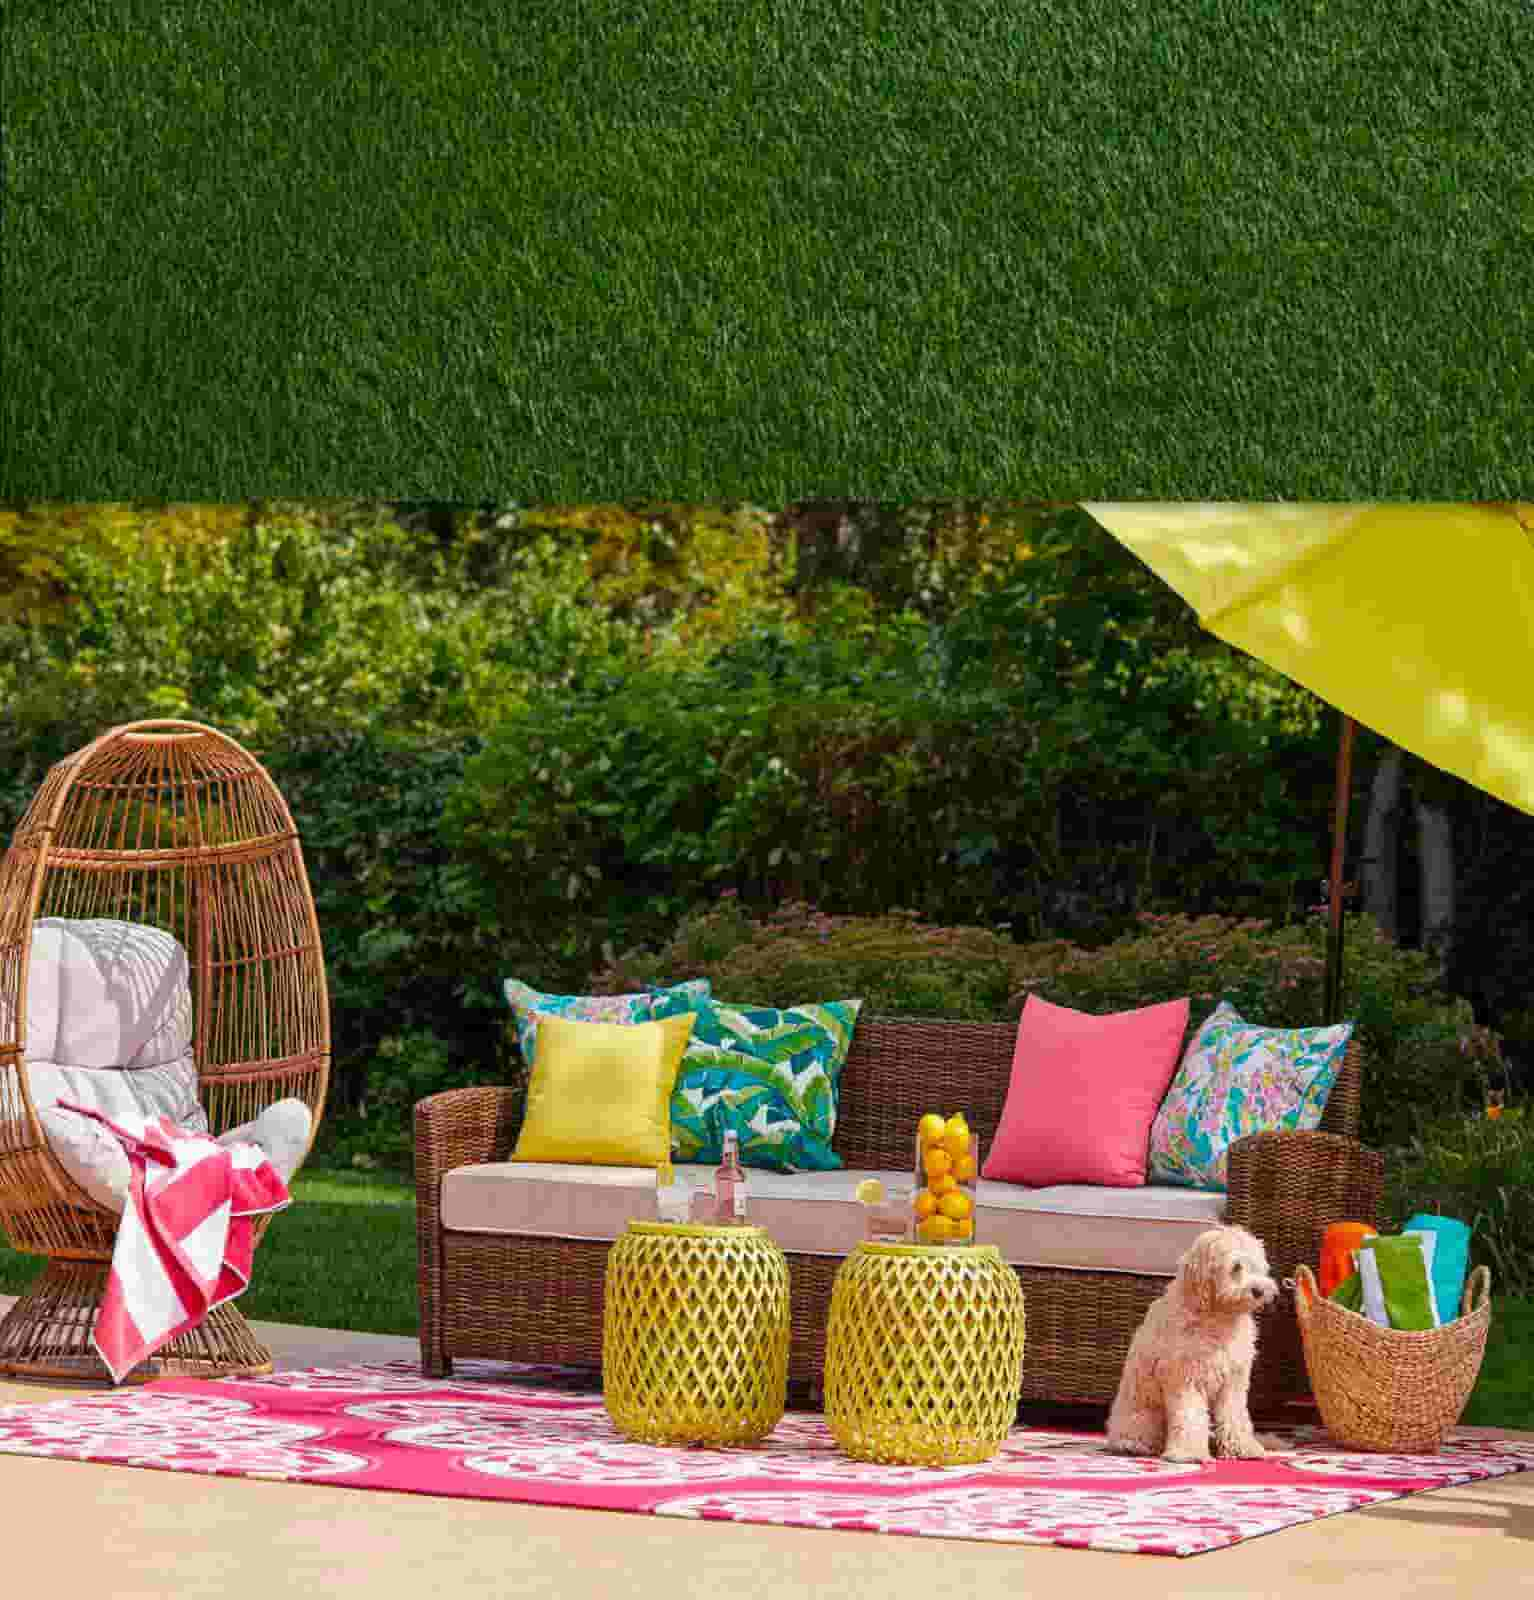 Patio Super Sale, 70% off 1000s of Items*  Shop Now,  FREE SHIPPING on EVERYTHING*